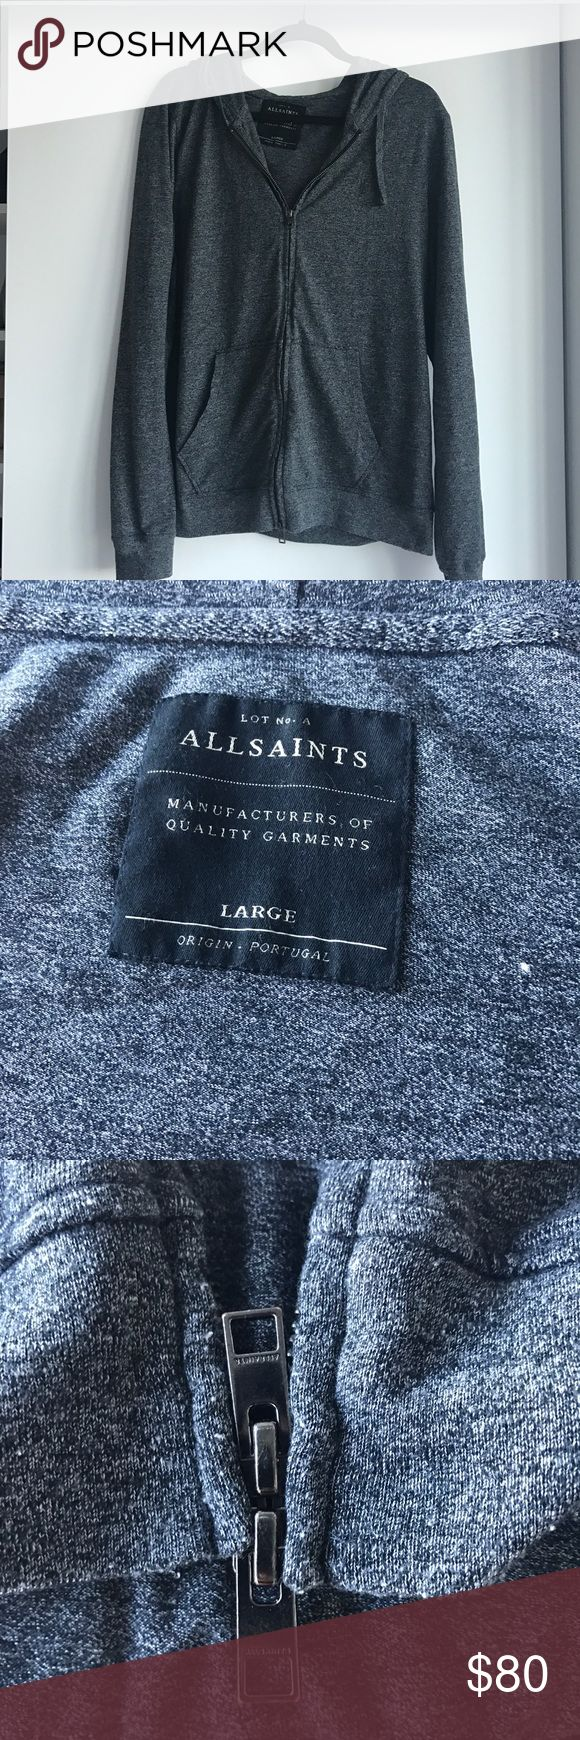 All Saints Dark Grey Hoody Women Large All Saints Hoody, like new condition, size large. I wear it as a boyfriend hoodie - super comfortable material (on the thinner side - good for lounge wear). Double zipper. Retails for $195+ tax. Selling to clear out wardrobe for 2017. All Saints Jackets & Coats